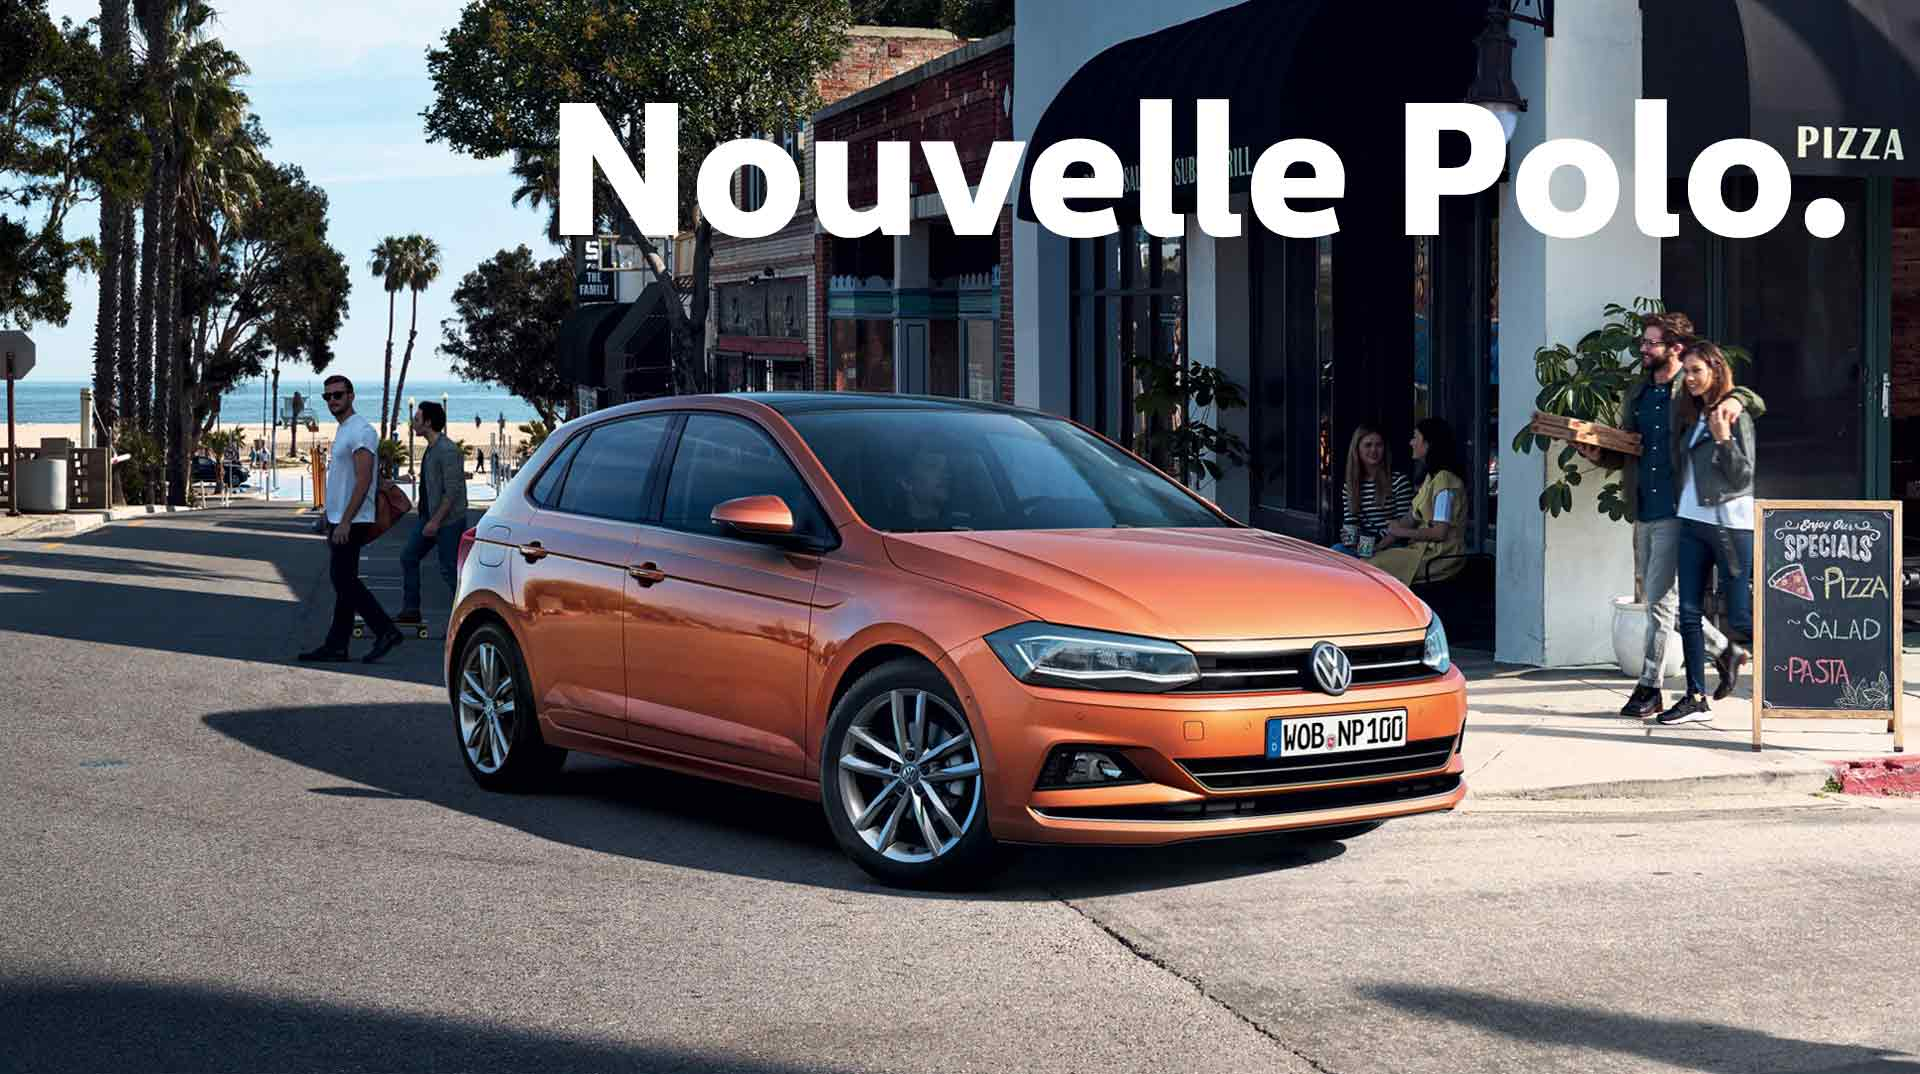 Nouvelle polo volkswagen valenton for Interieur nouvelle polo